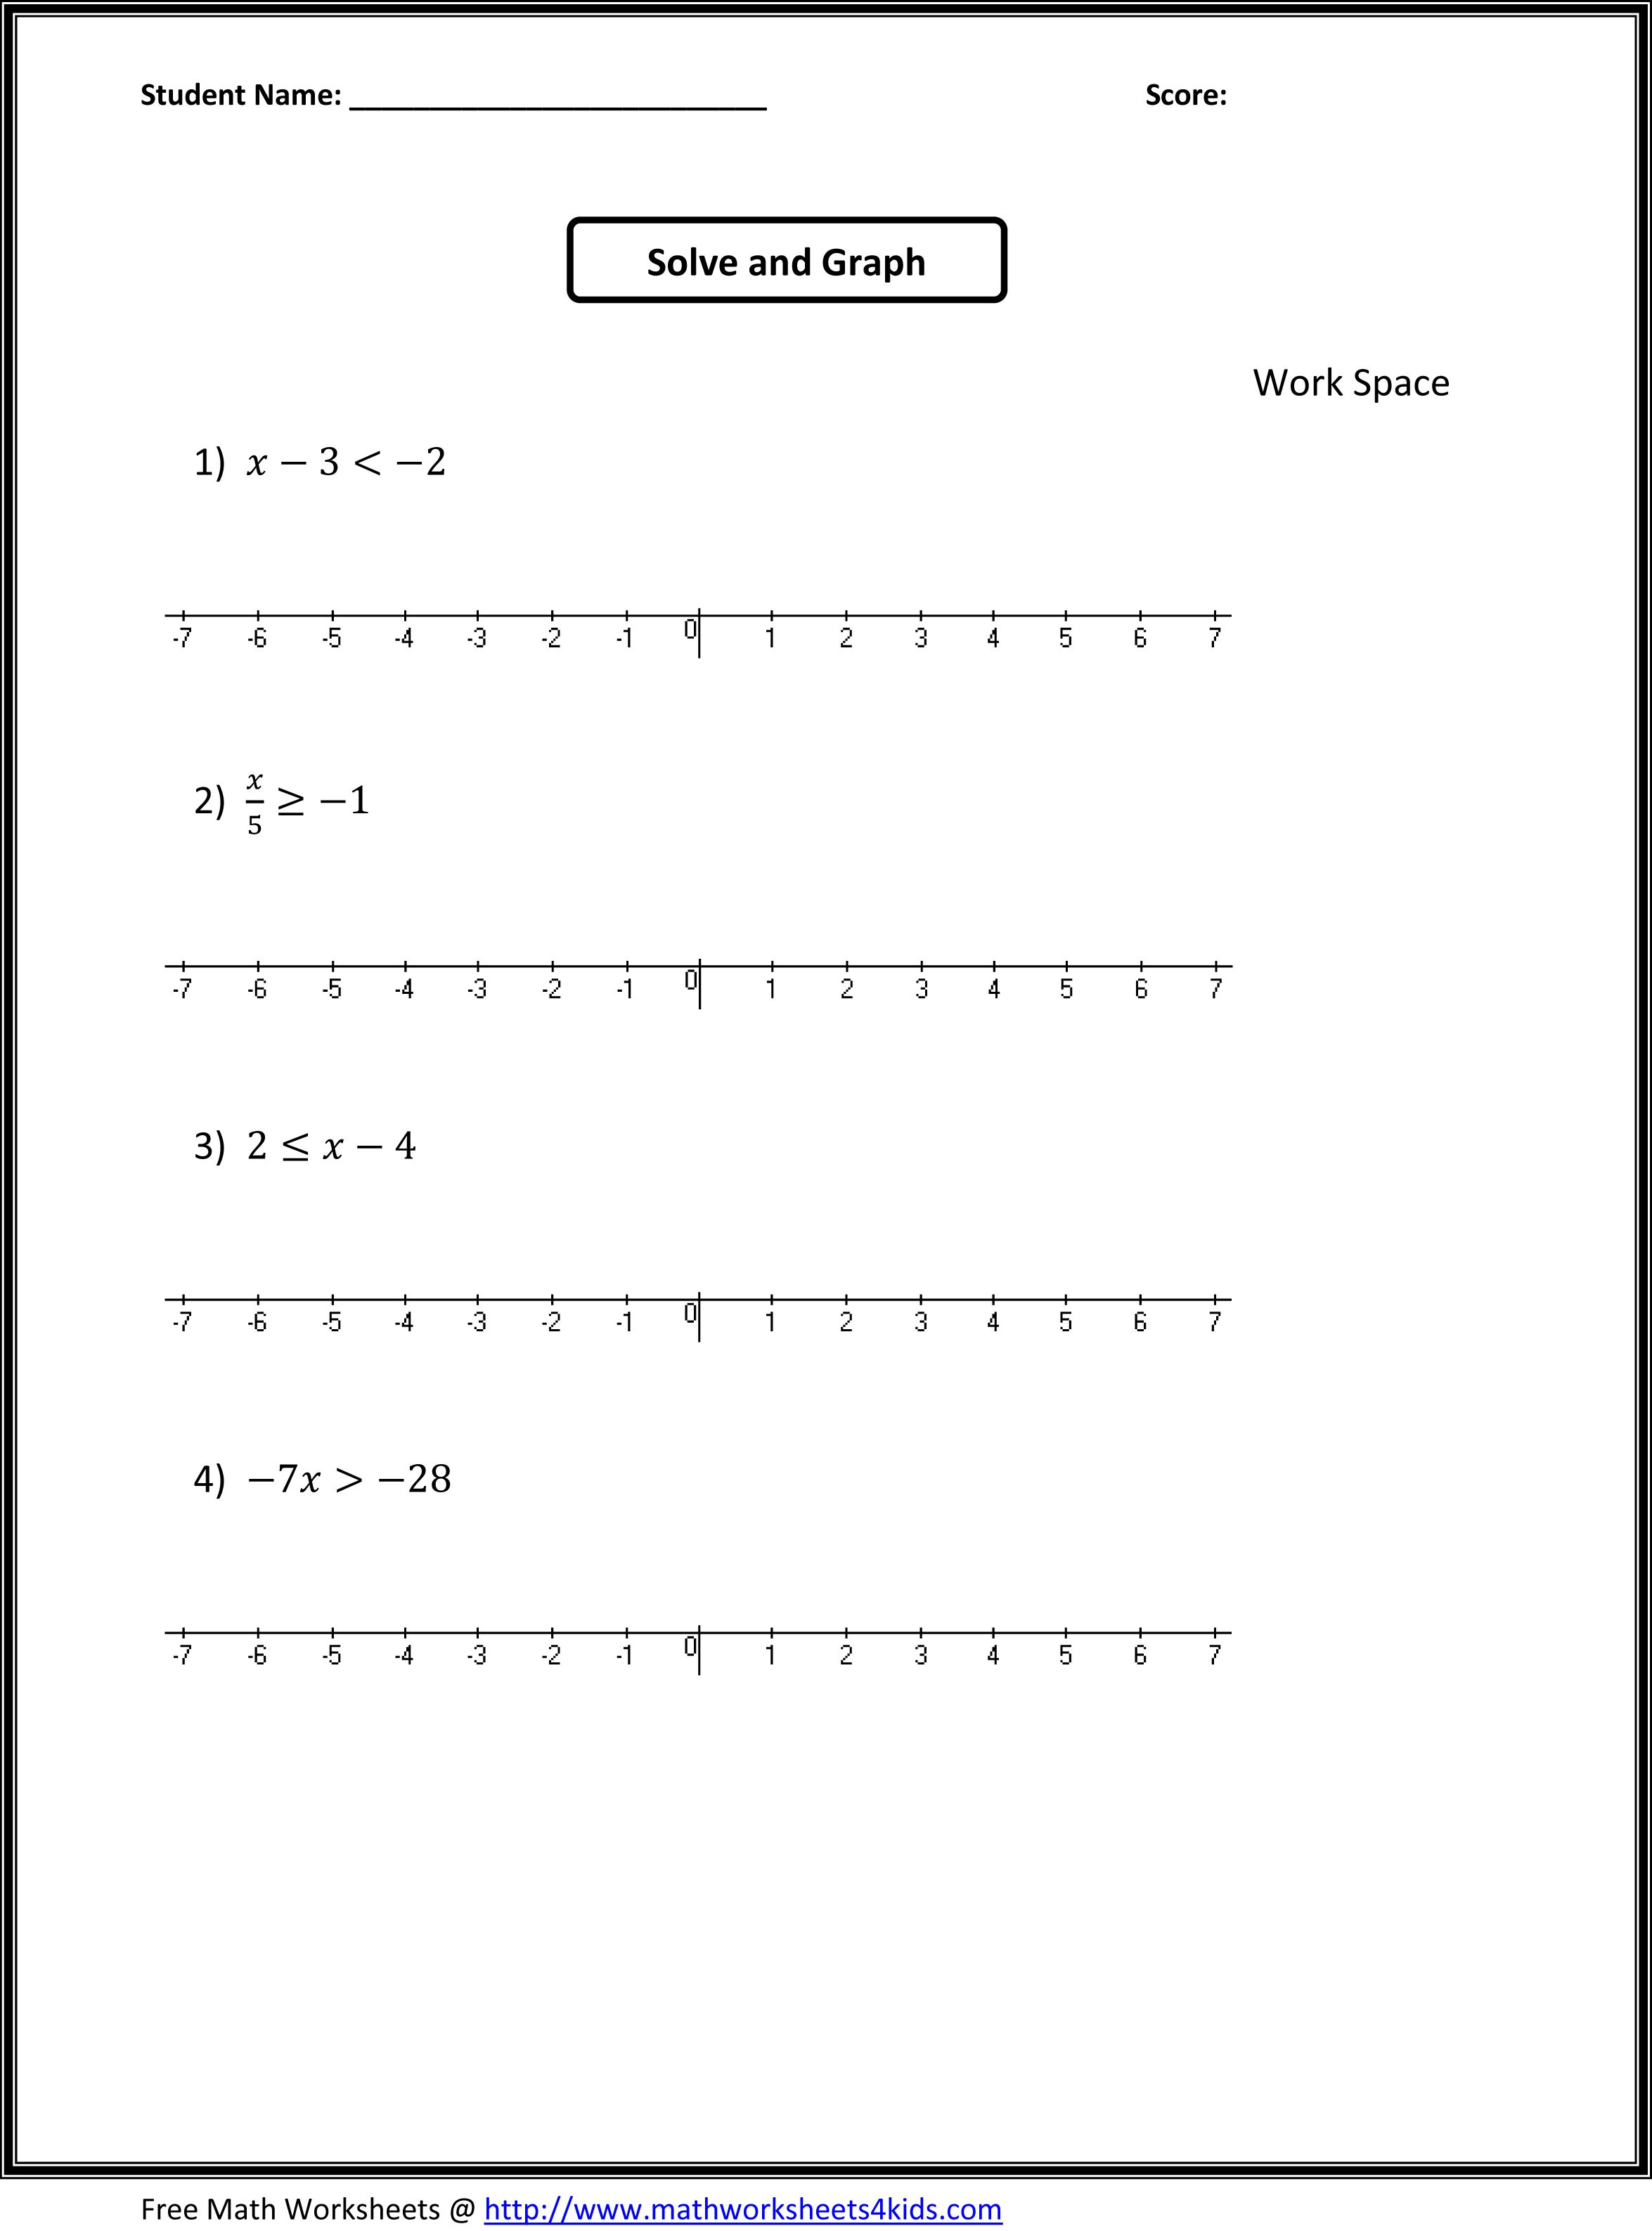 Printables 7th Grade Math Printable Worksheets printable 7th grade math worksheets syndeomedia 1000 images about on pinterest activities fractions worksheets